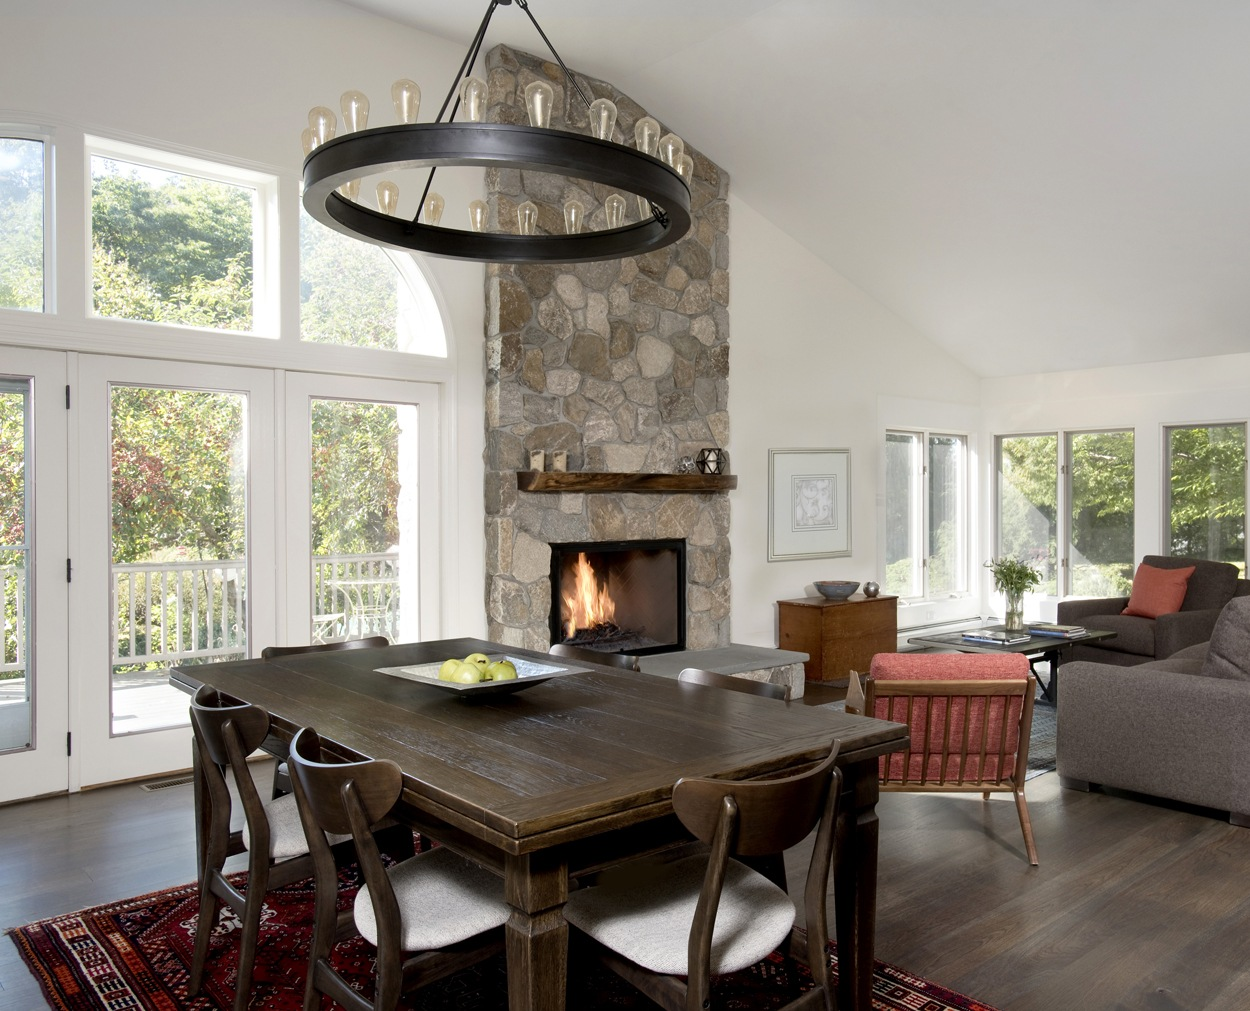 Whole house renovation with great room and fireplace